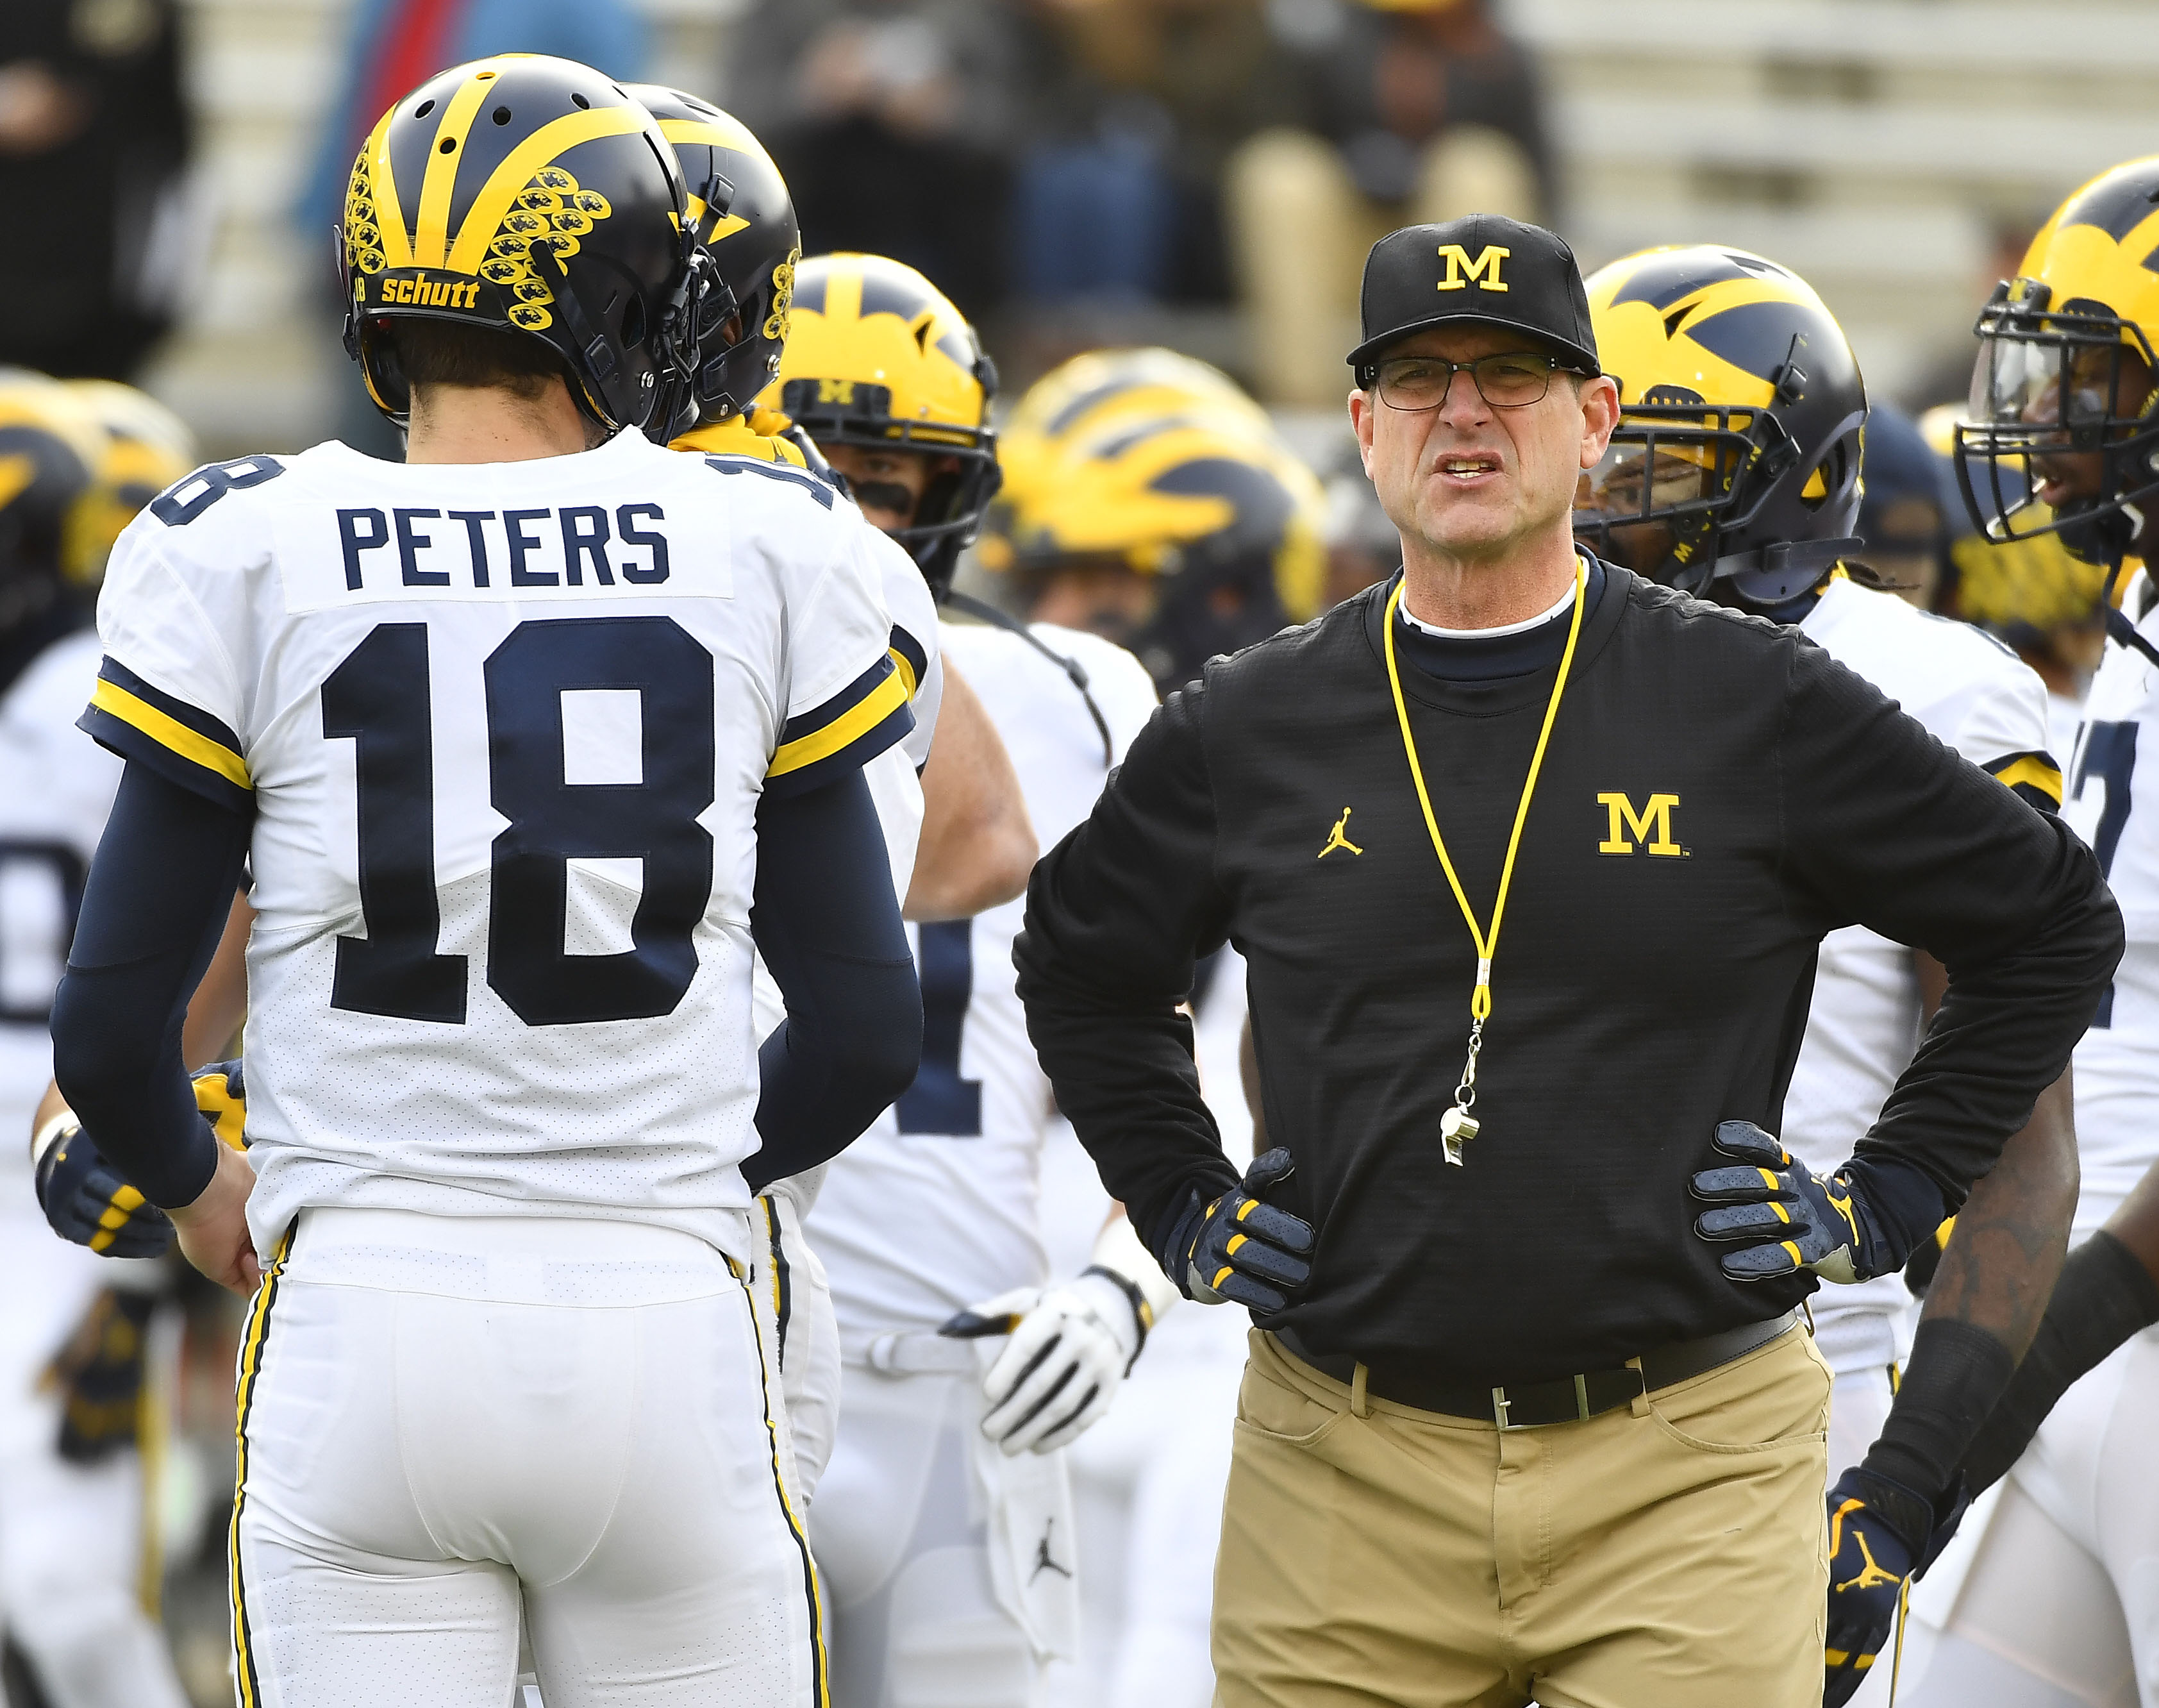 NCAA Football: Michigan during Maryland